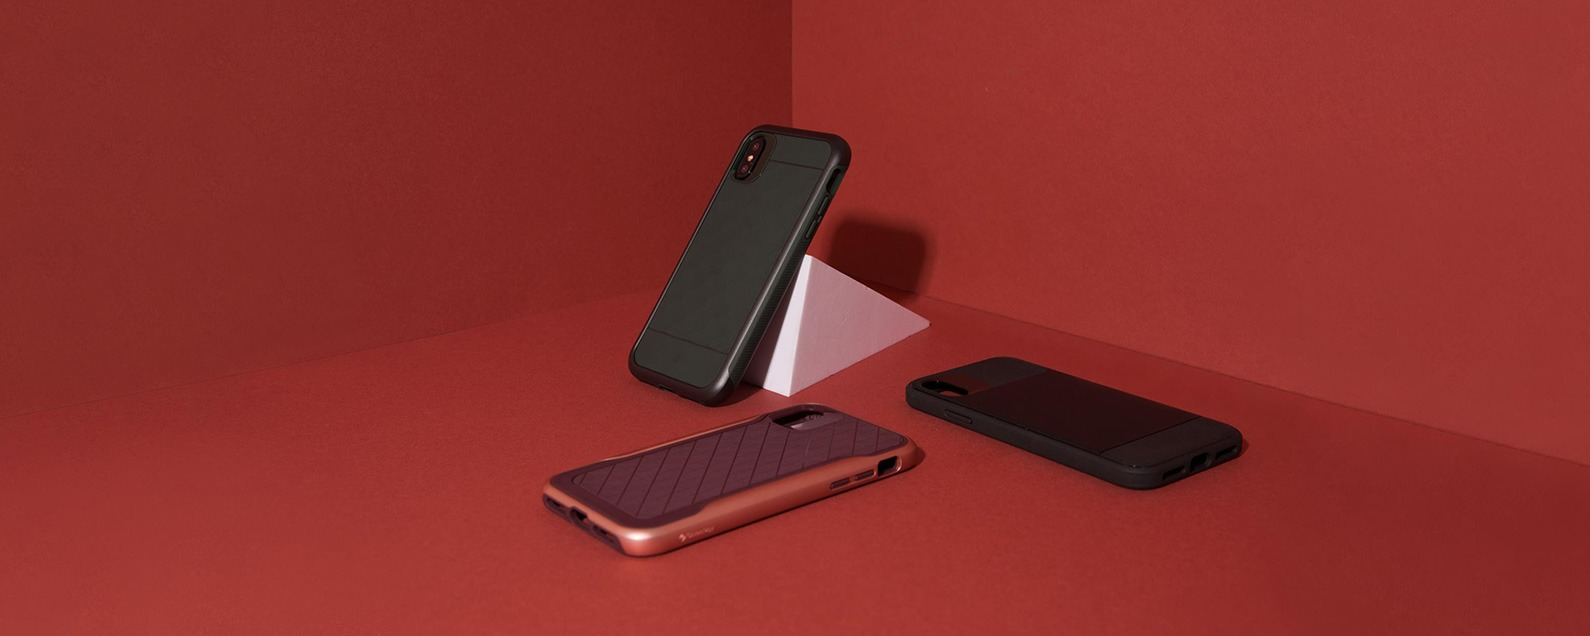 Review: Slim, Stylish & Protective Cases for iPhone X & iPhone 8